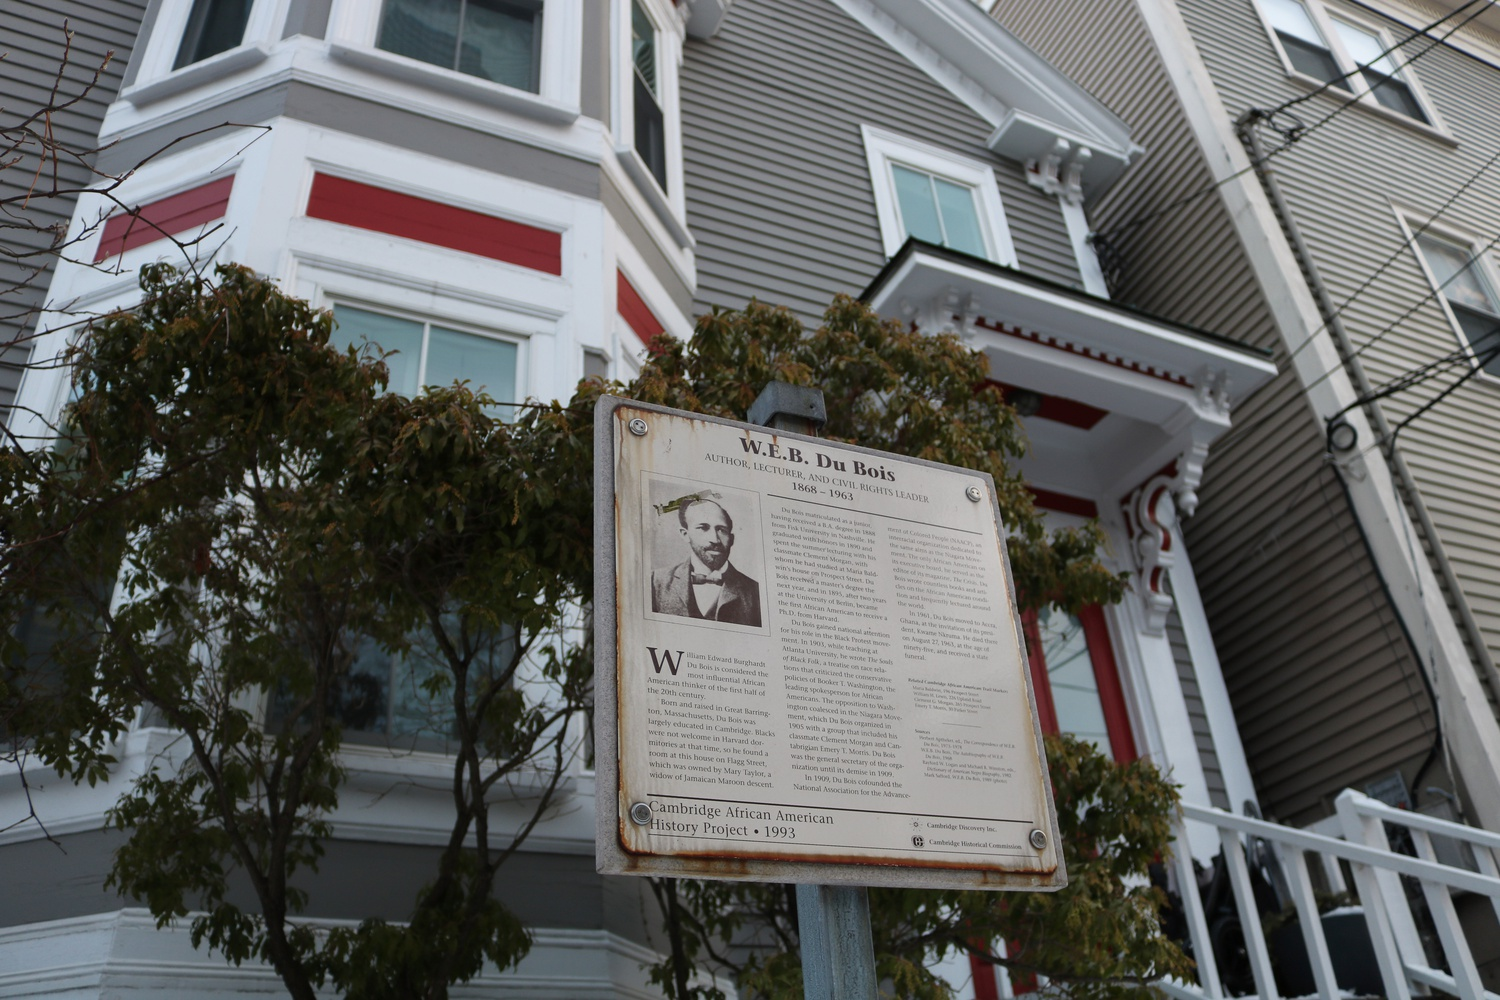 Located in Cambridge, MA is the home of W.E.B. Du Bois, a famed intellect and the first black recipient of a Harvard doctorate degree in History.